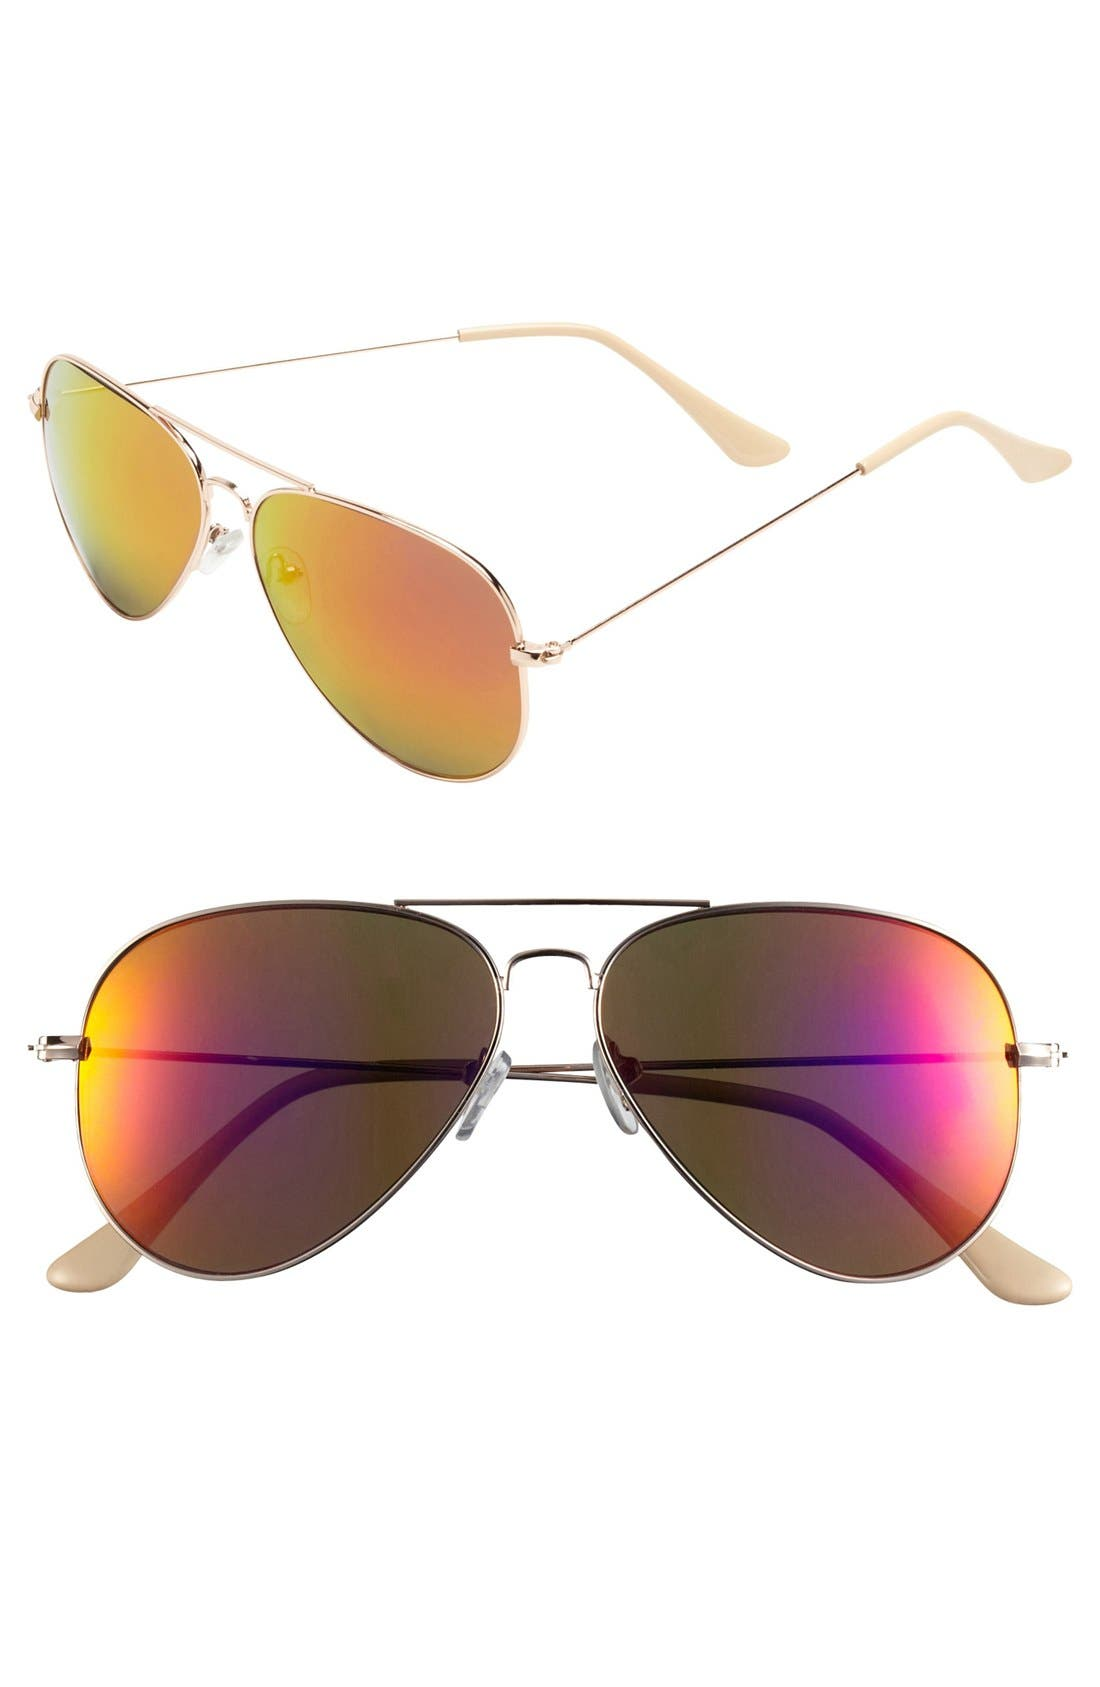 Alternate Image 1 Selected - BP. 'Flash' Aviator Sunglasses (Juniors)